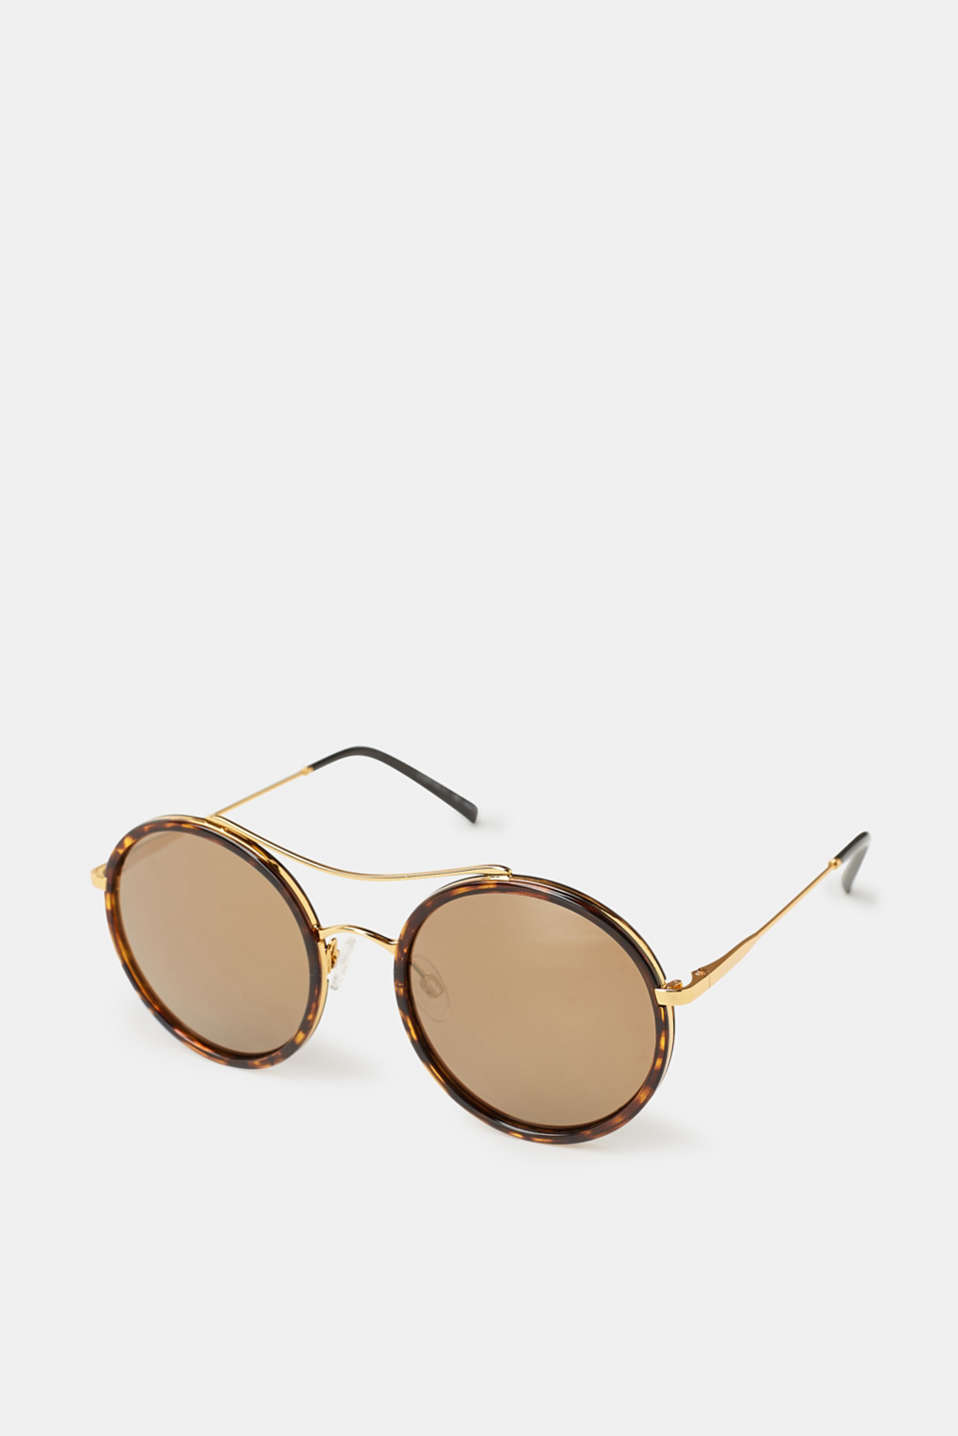 The exciting retro design with gold mirrored lenses and filigree metal temples makes these sunglasses trendy head-turners.